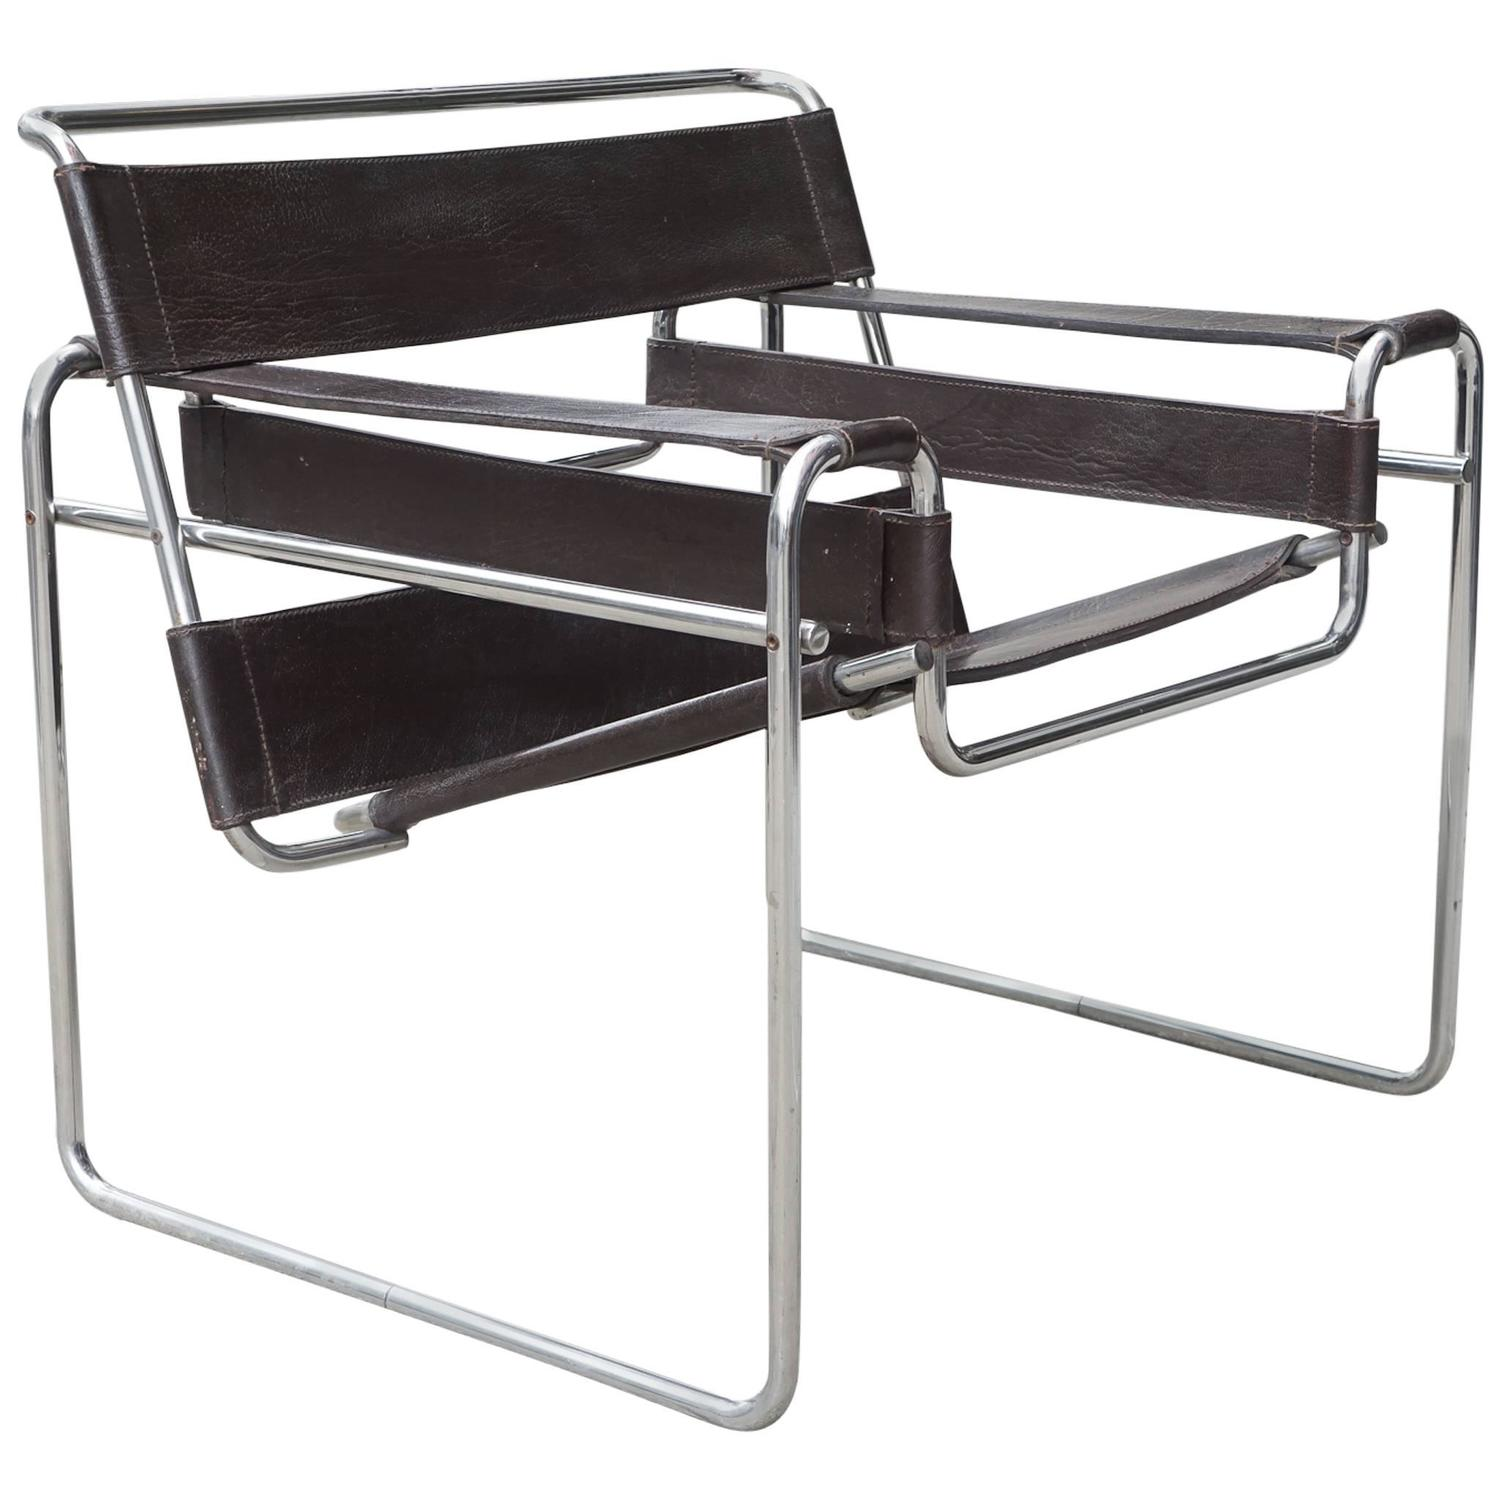 Delightful Vintage Marcel Breuer Wassily Chrome And Leather Chair At 1stdibs